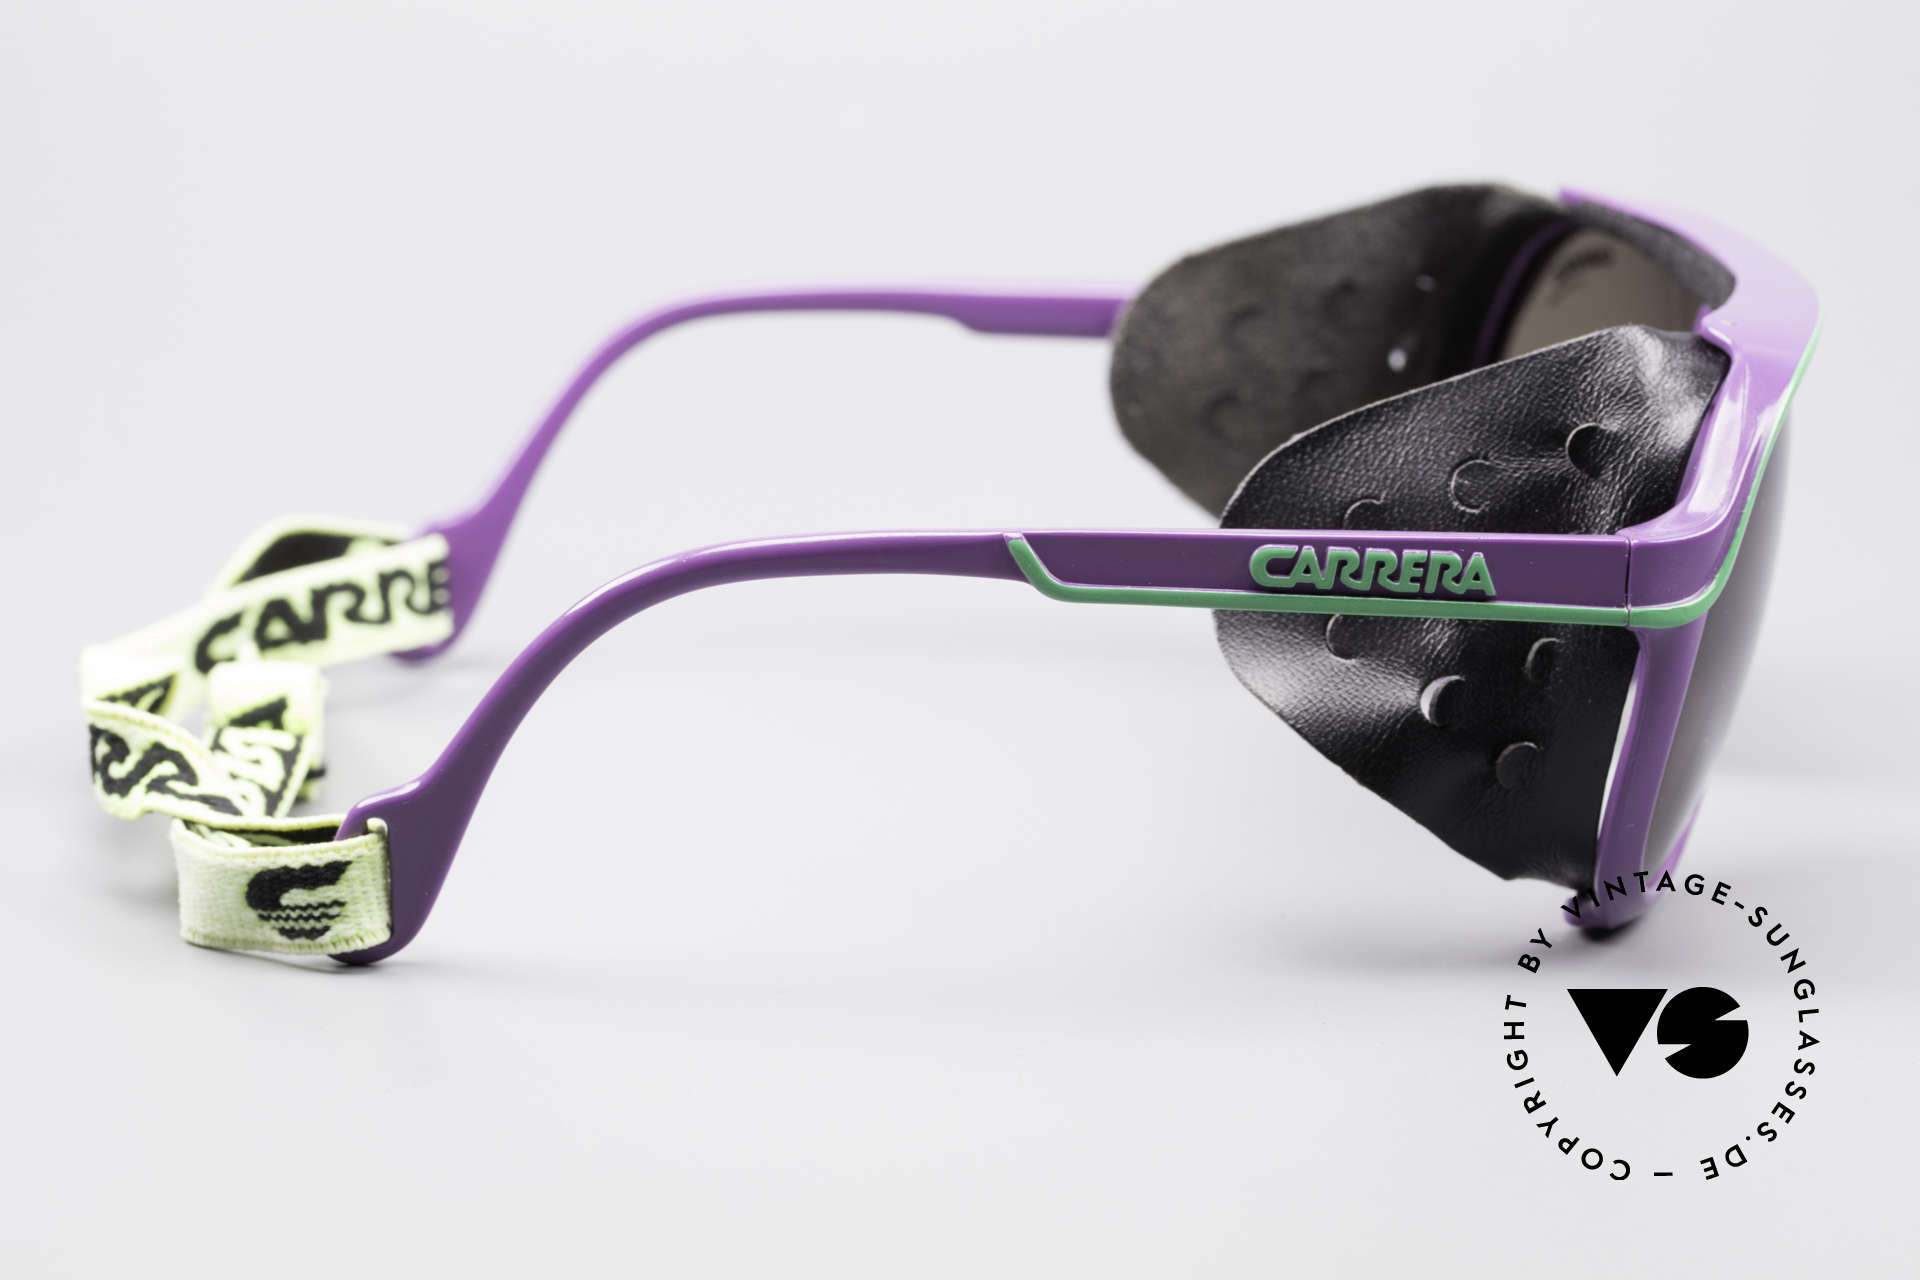 Carrera 5544 Sports Glacier Sunglasses, unique 90's designer original with removable side parts, Made for Men and Women